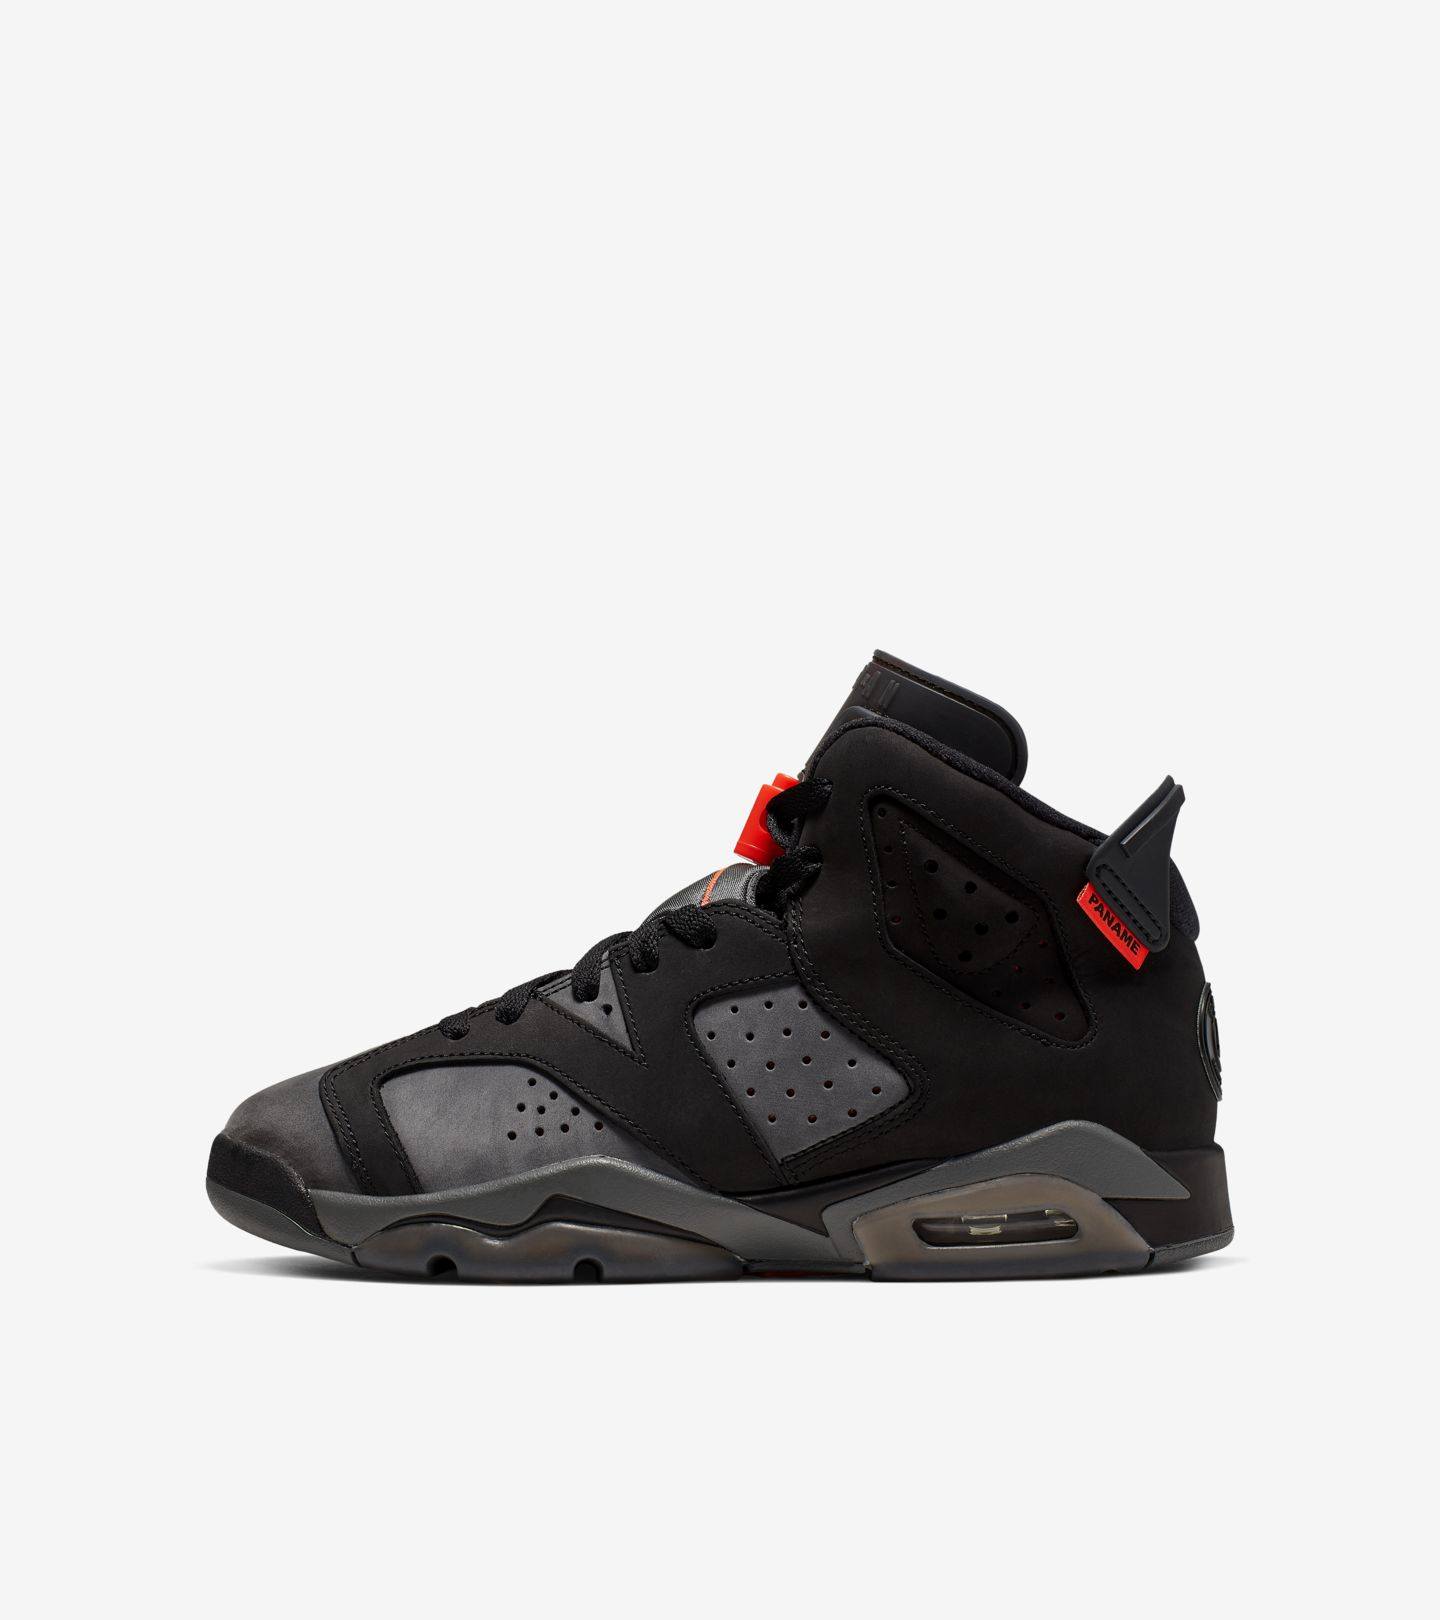 Nike Air Jordan 6 X PSG shoes grey